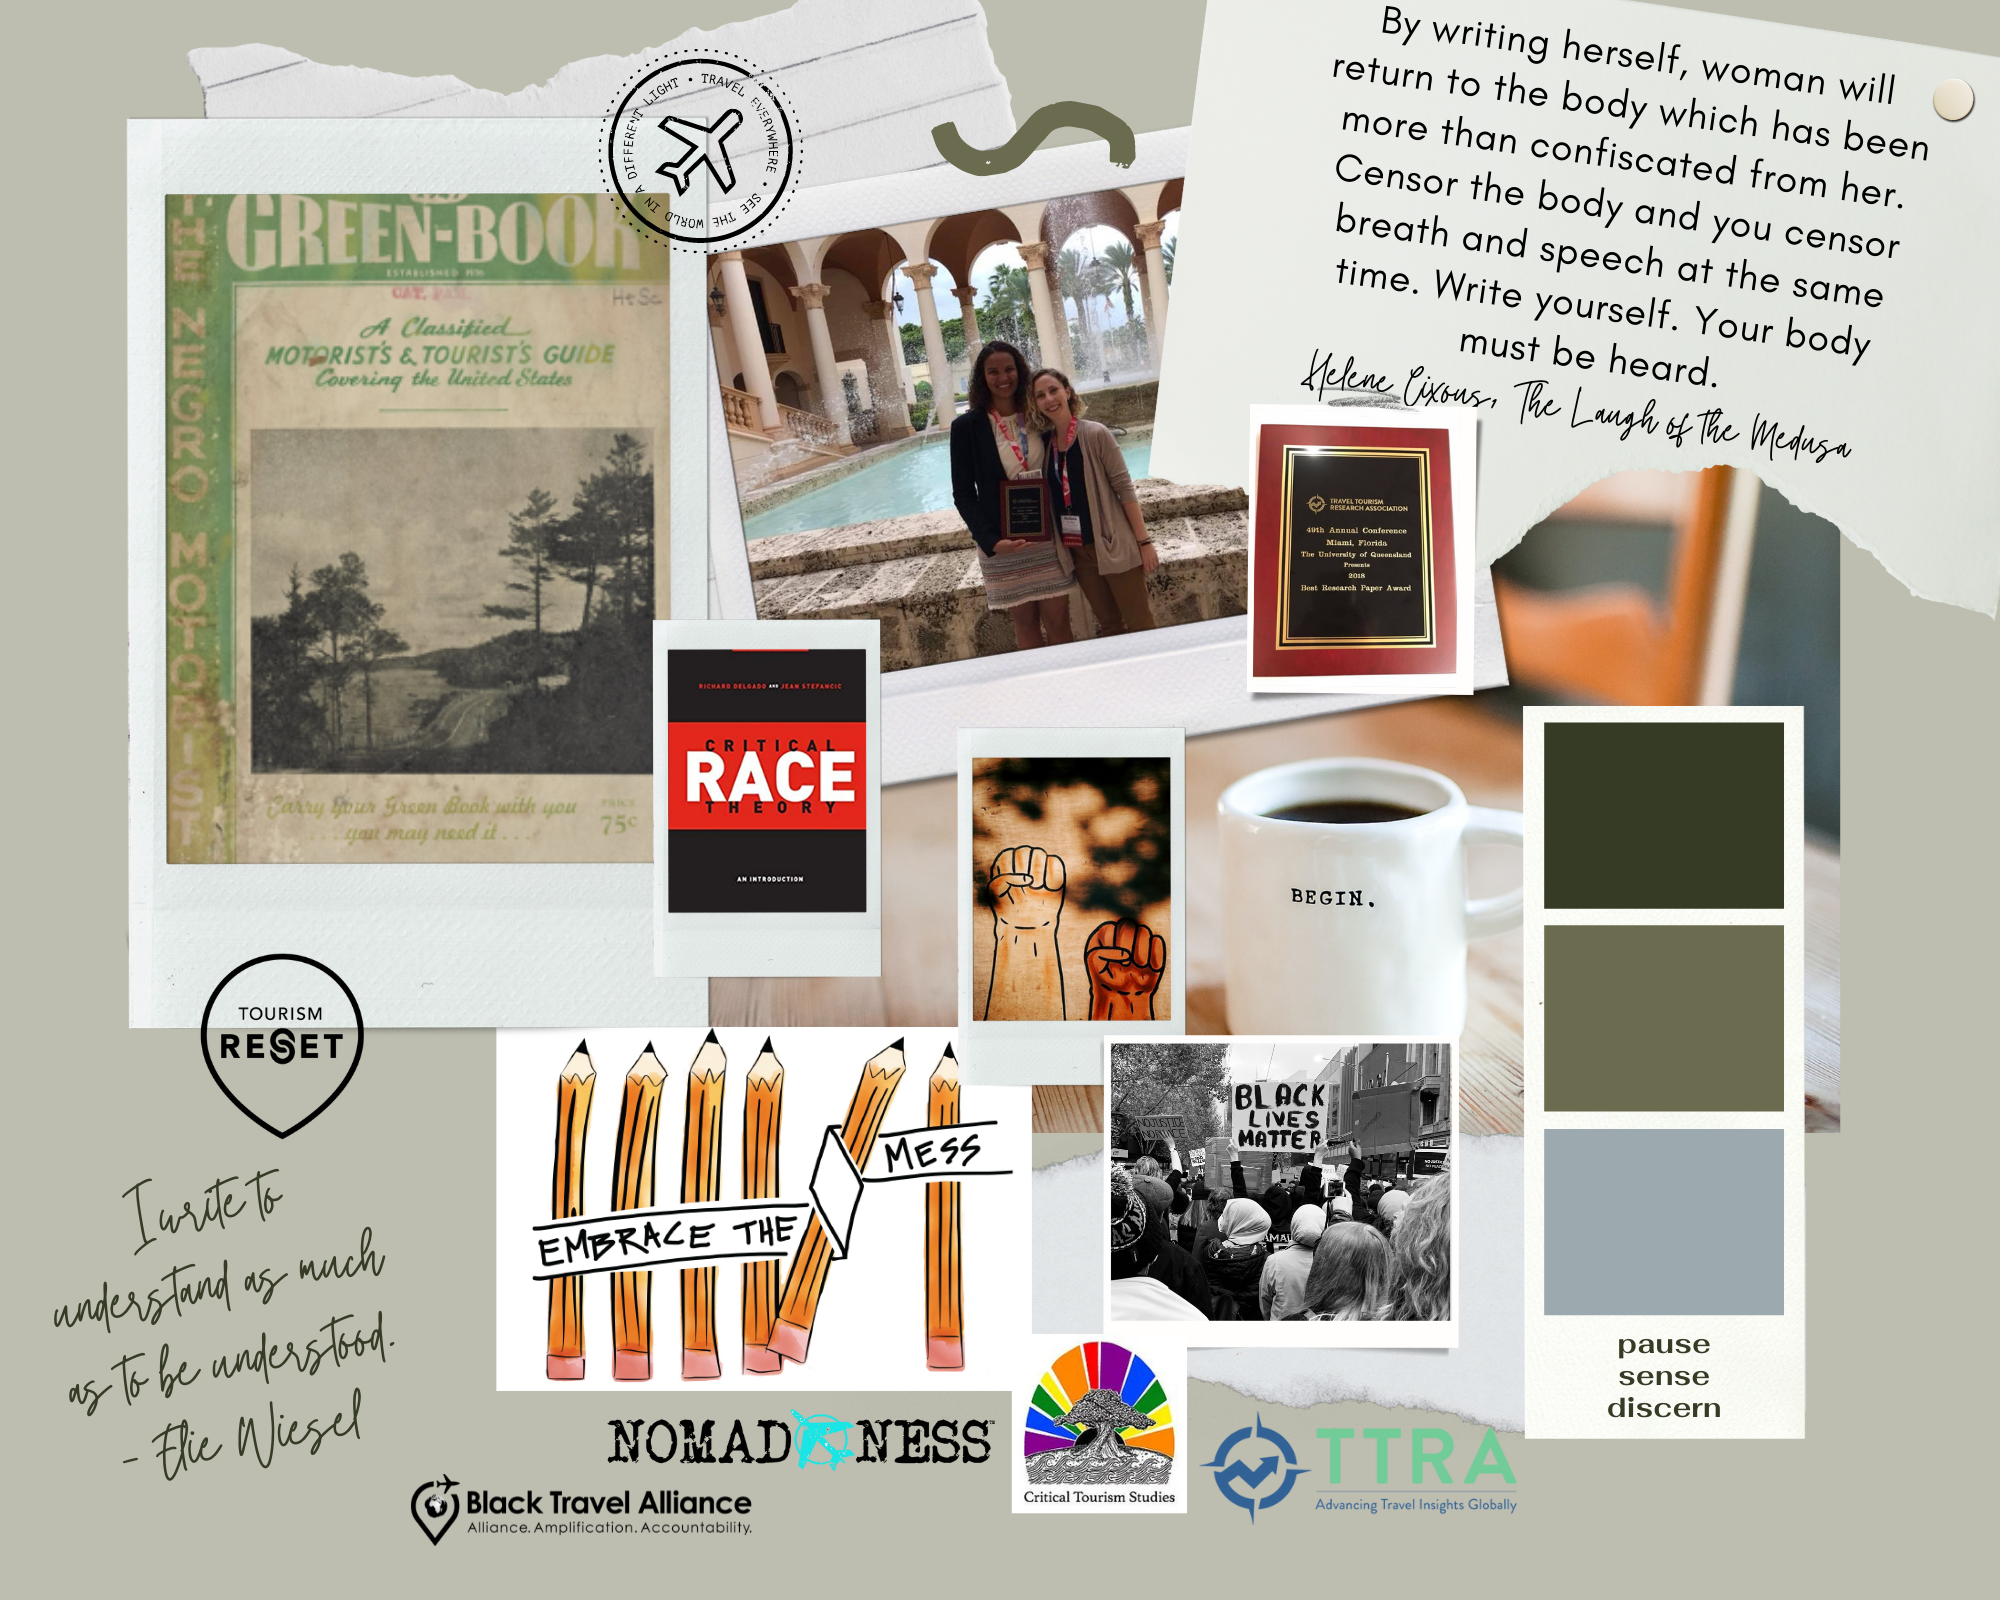 Visual representation of developing the body of work around racial and social justice through the Black travel movement